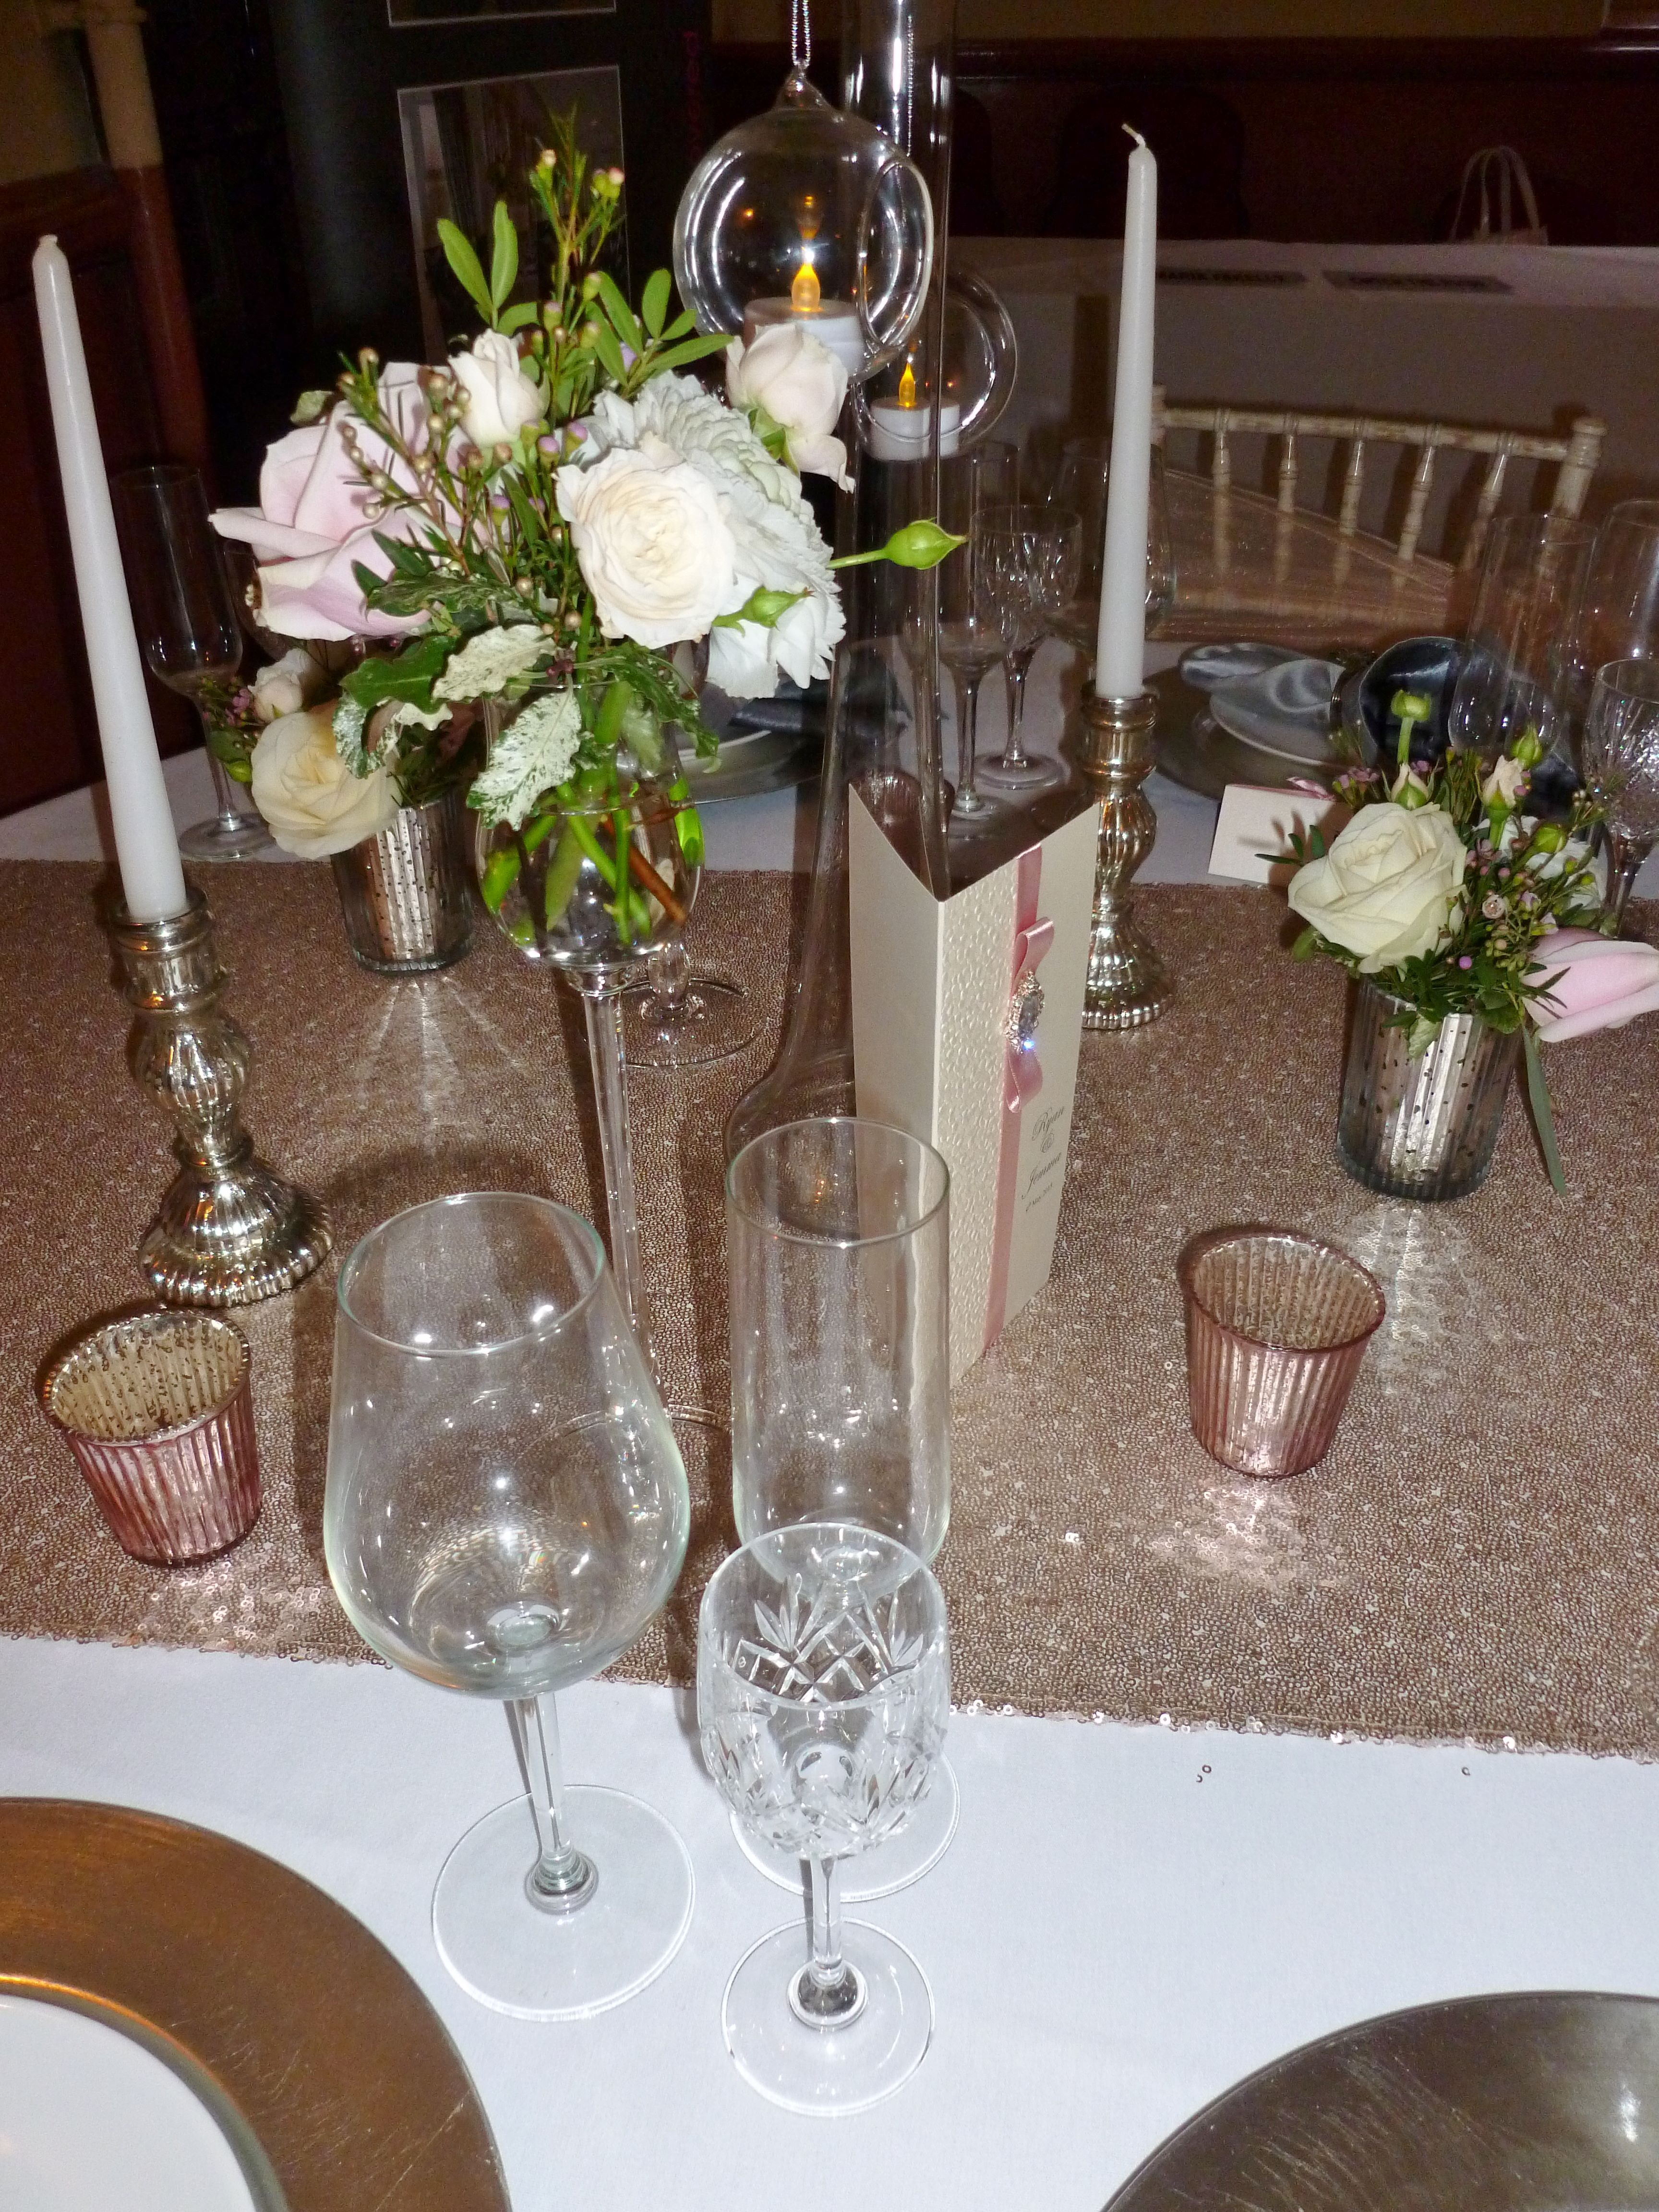 Champagne sequin table runner by Simply Bows and Chair Covers